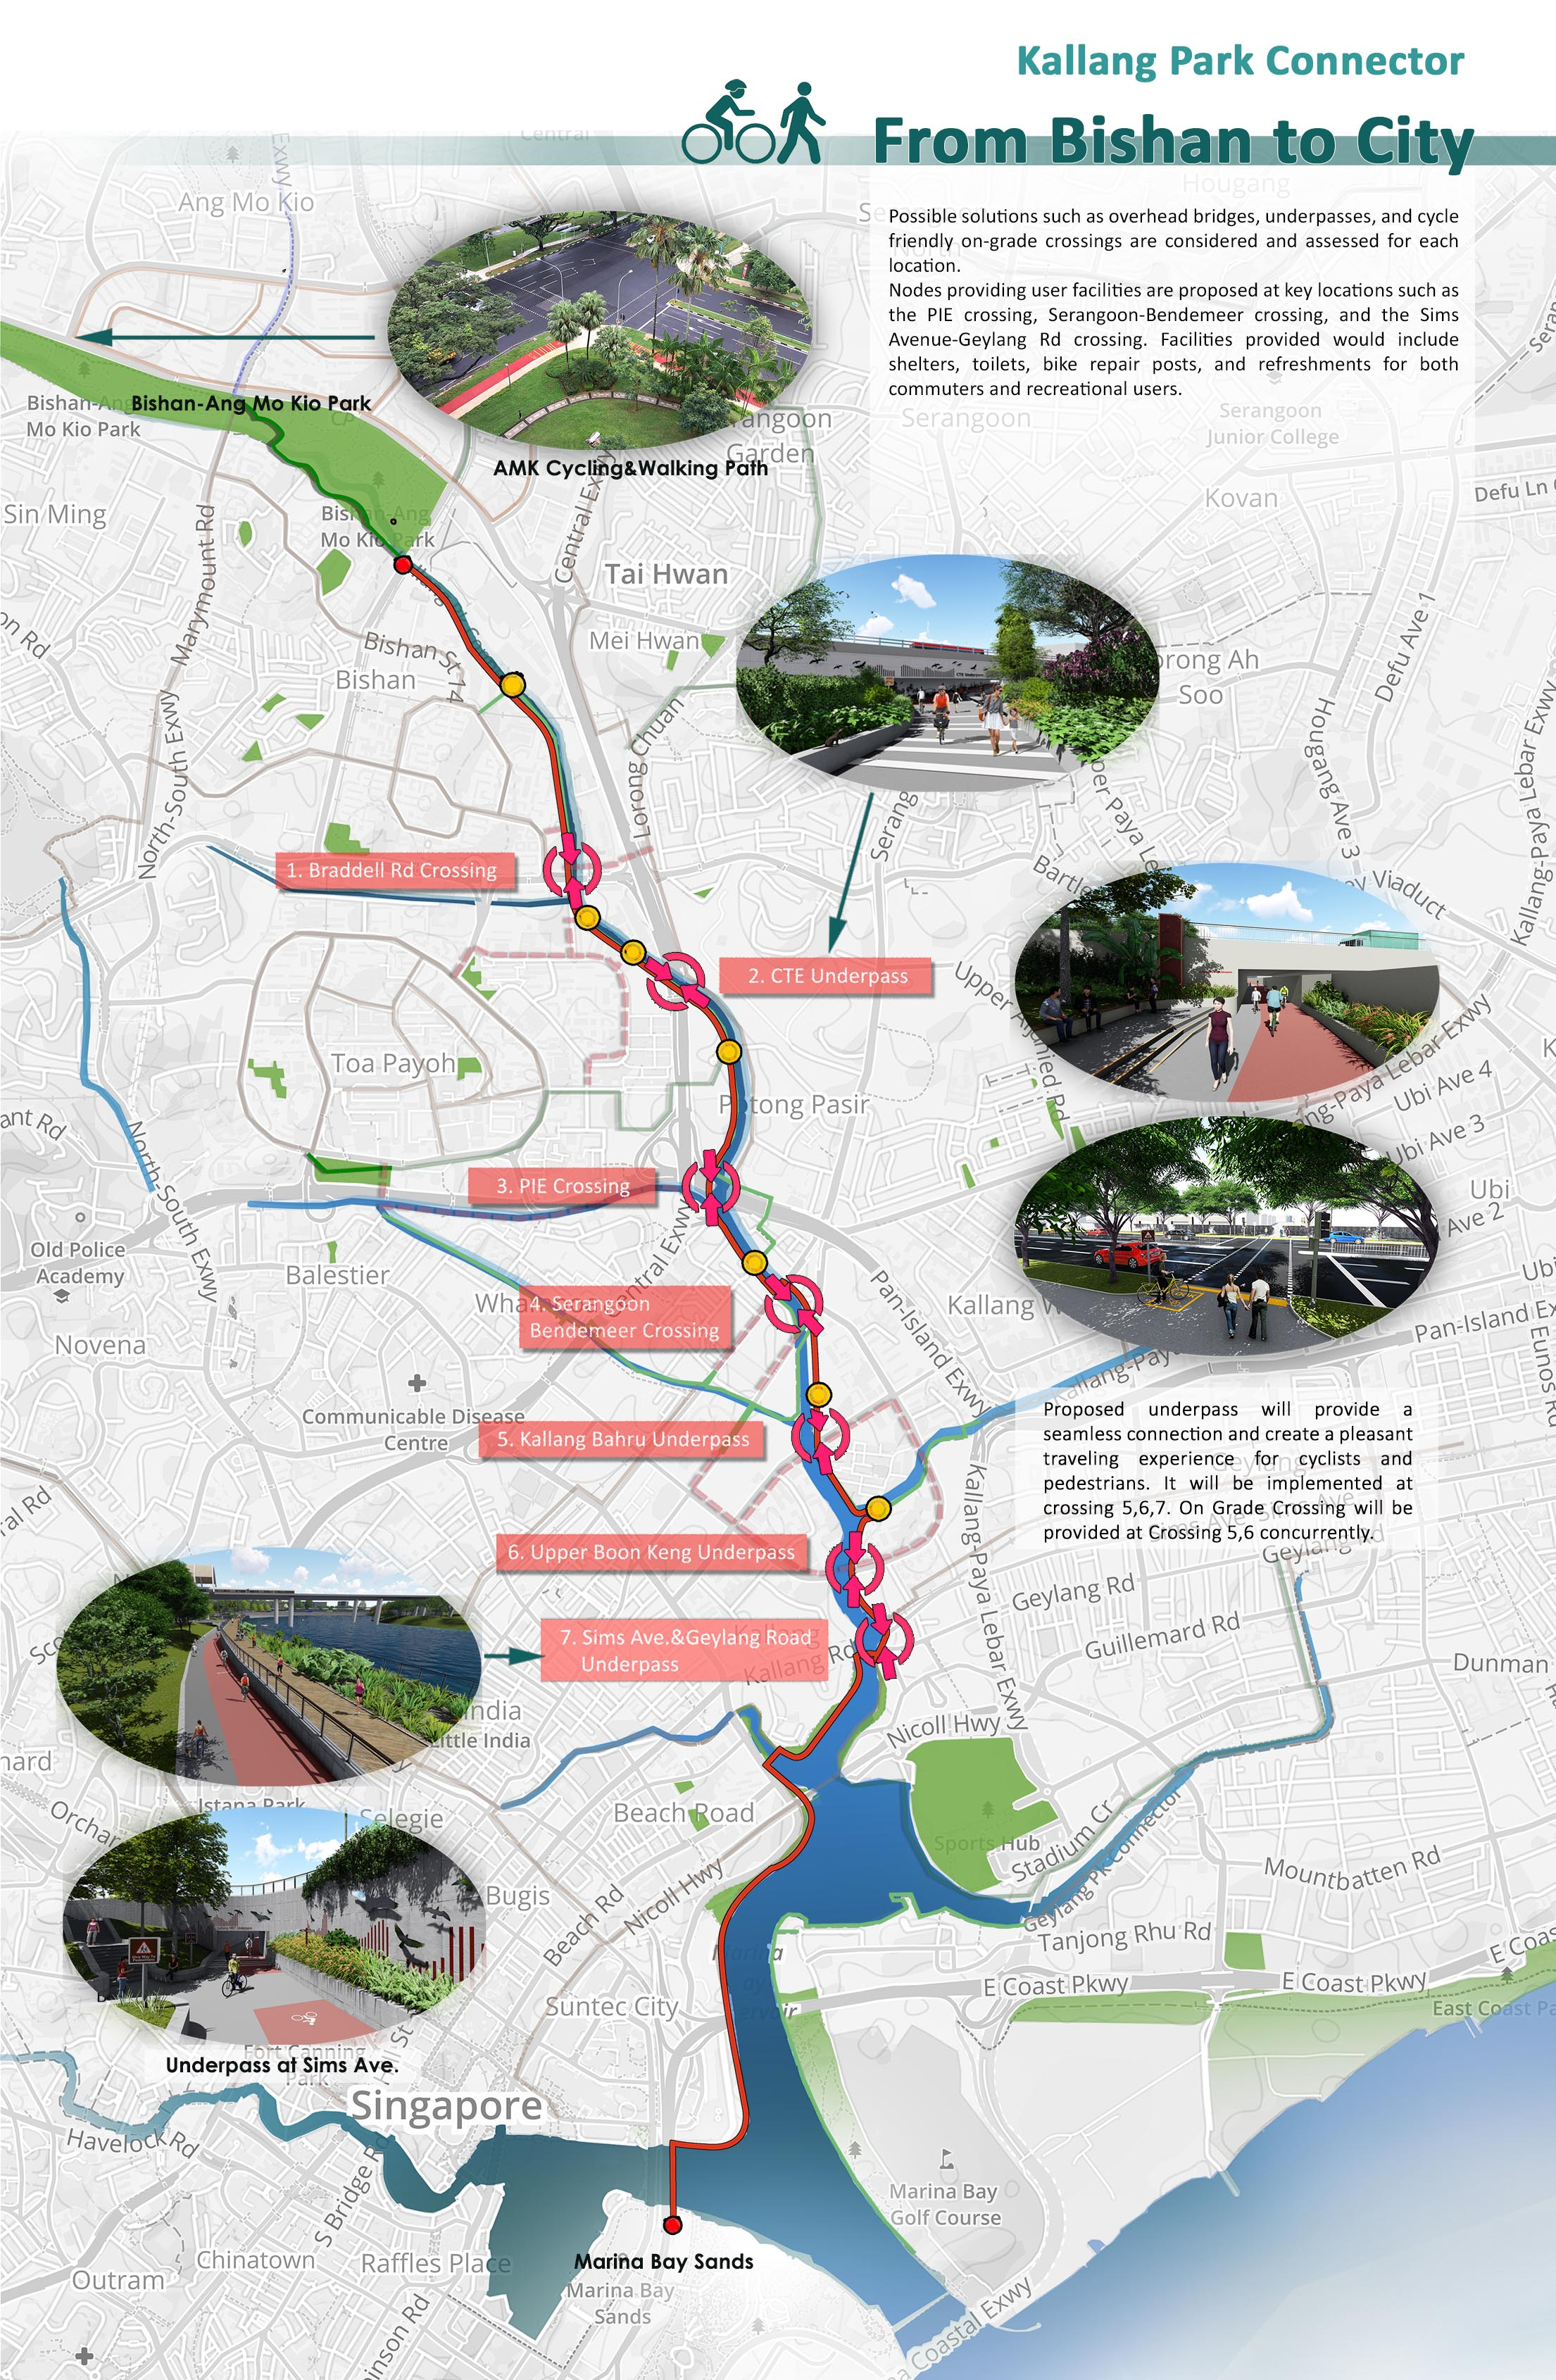 Bishan to City - Overall Plan of Crossings and Route